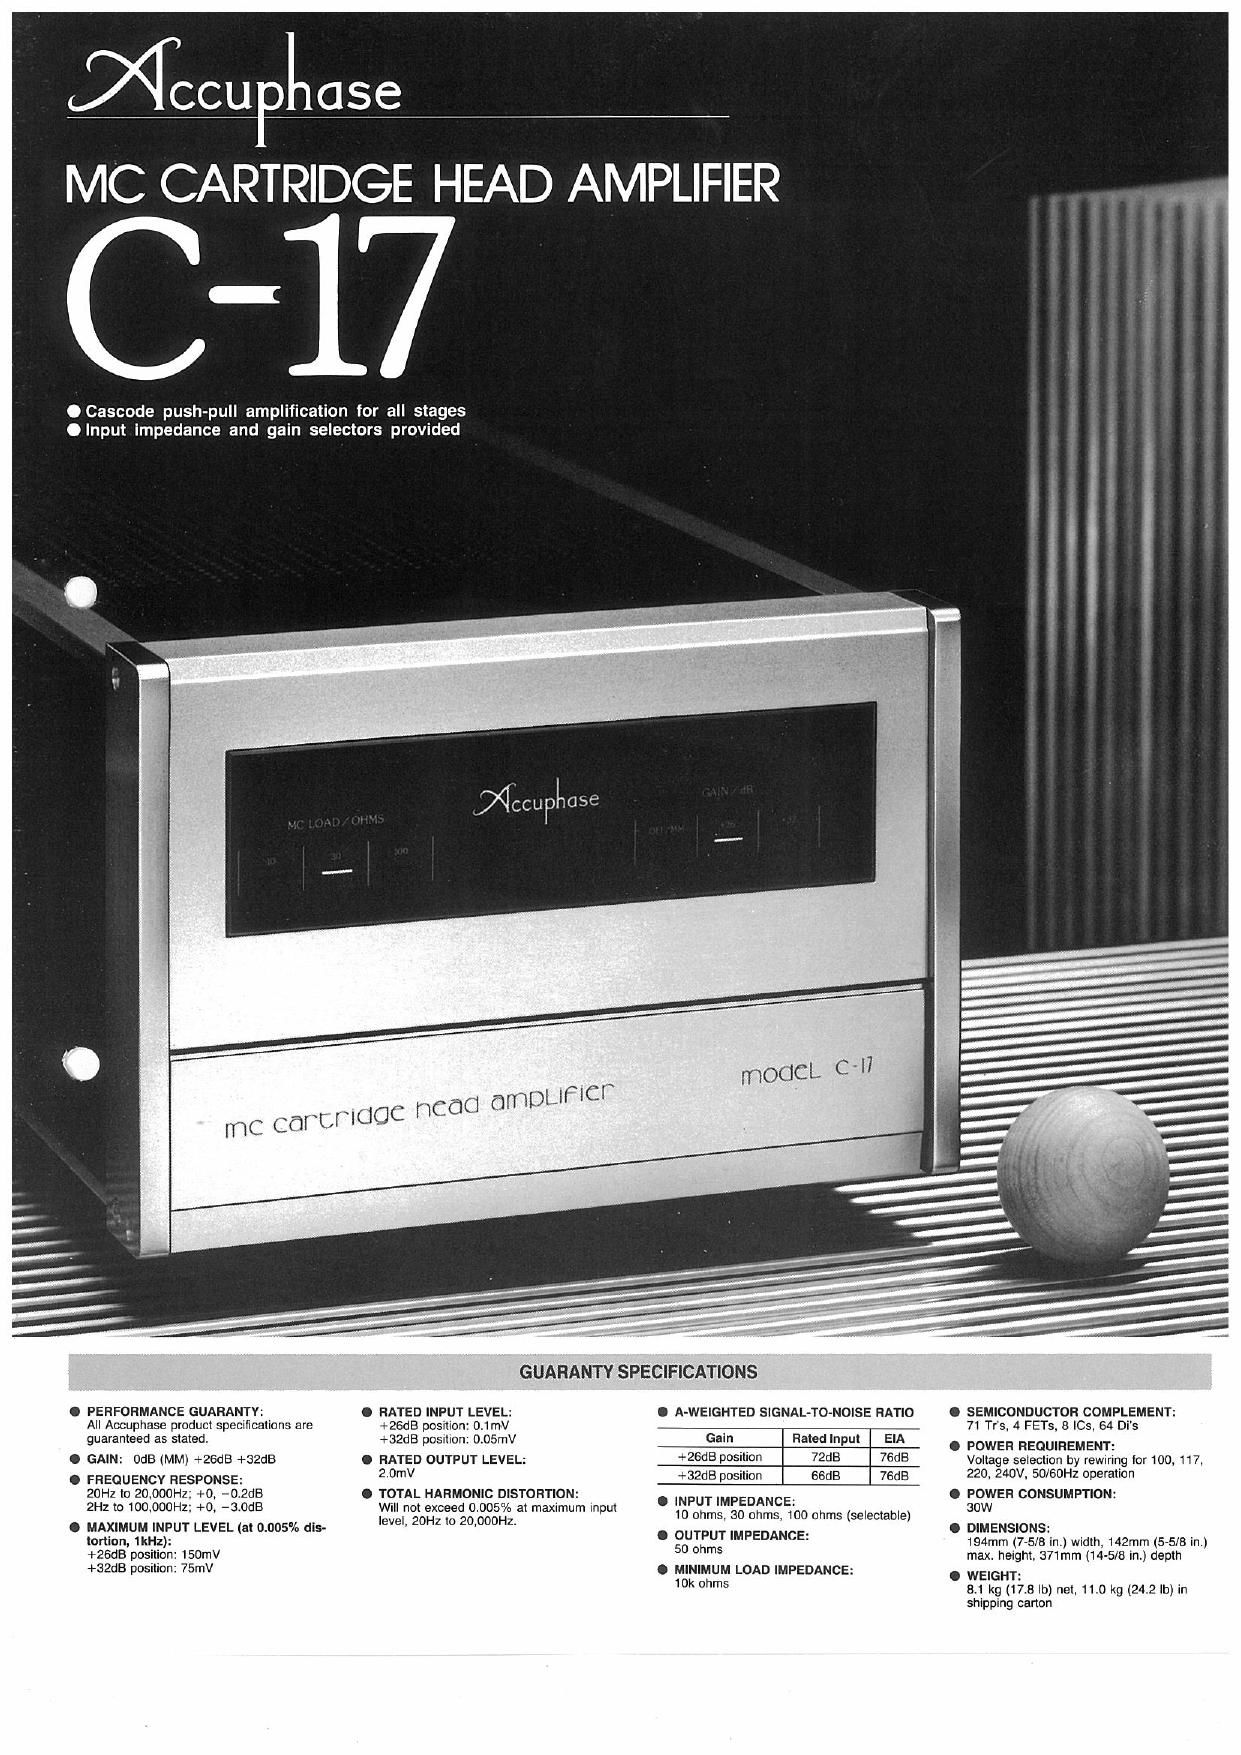 Accuphase C 17 Brochure